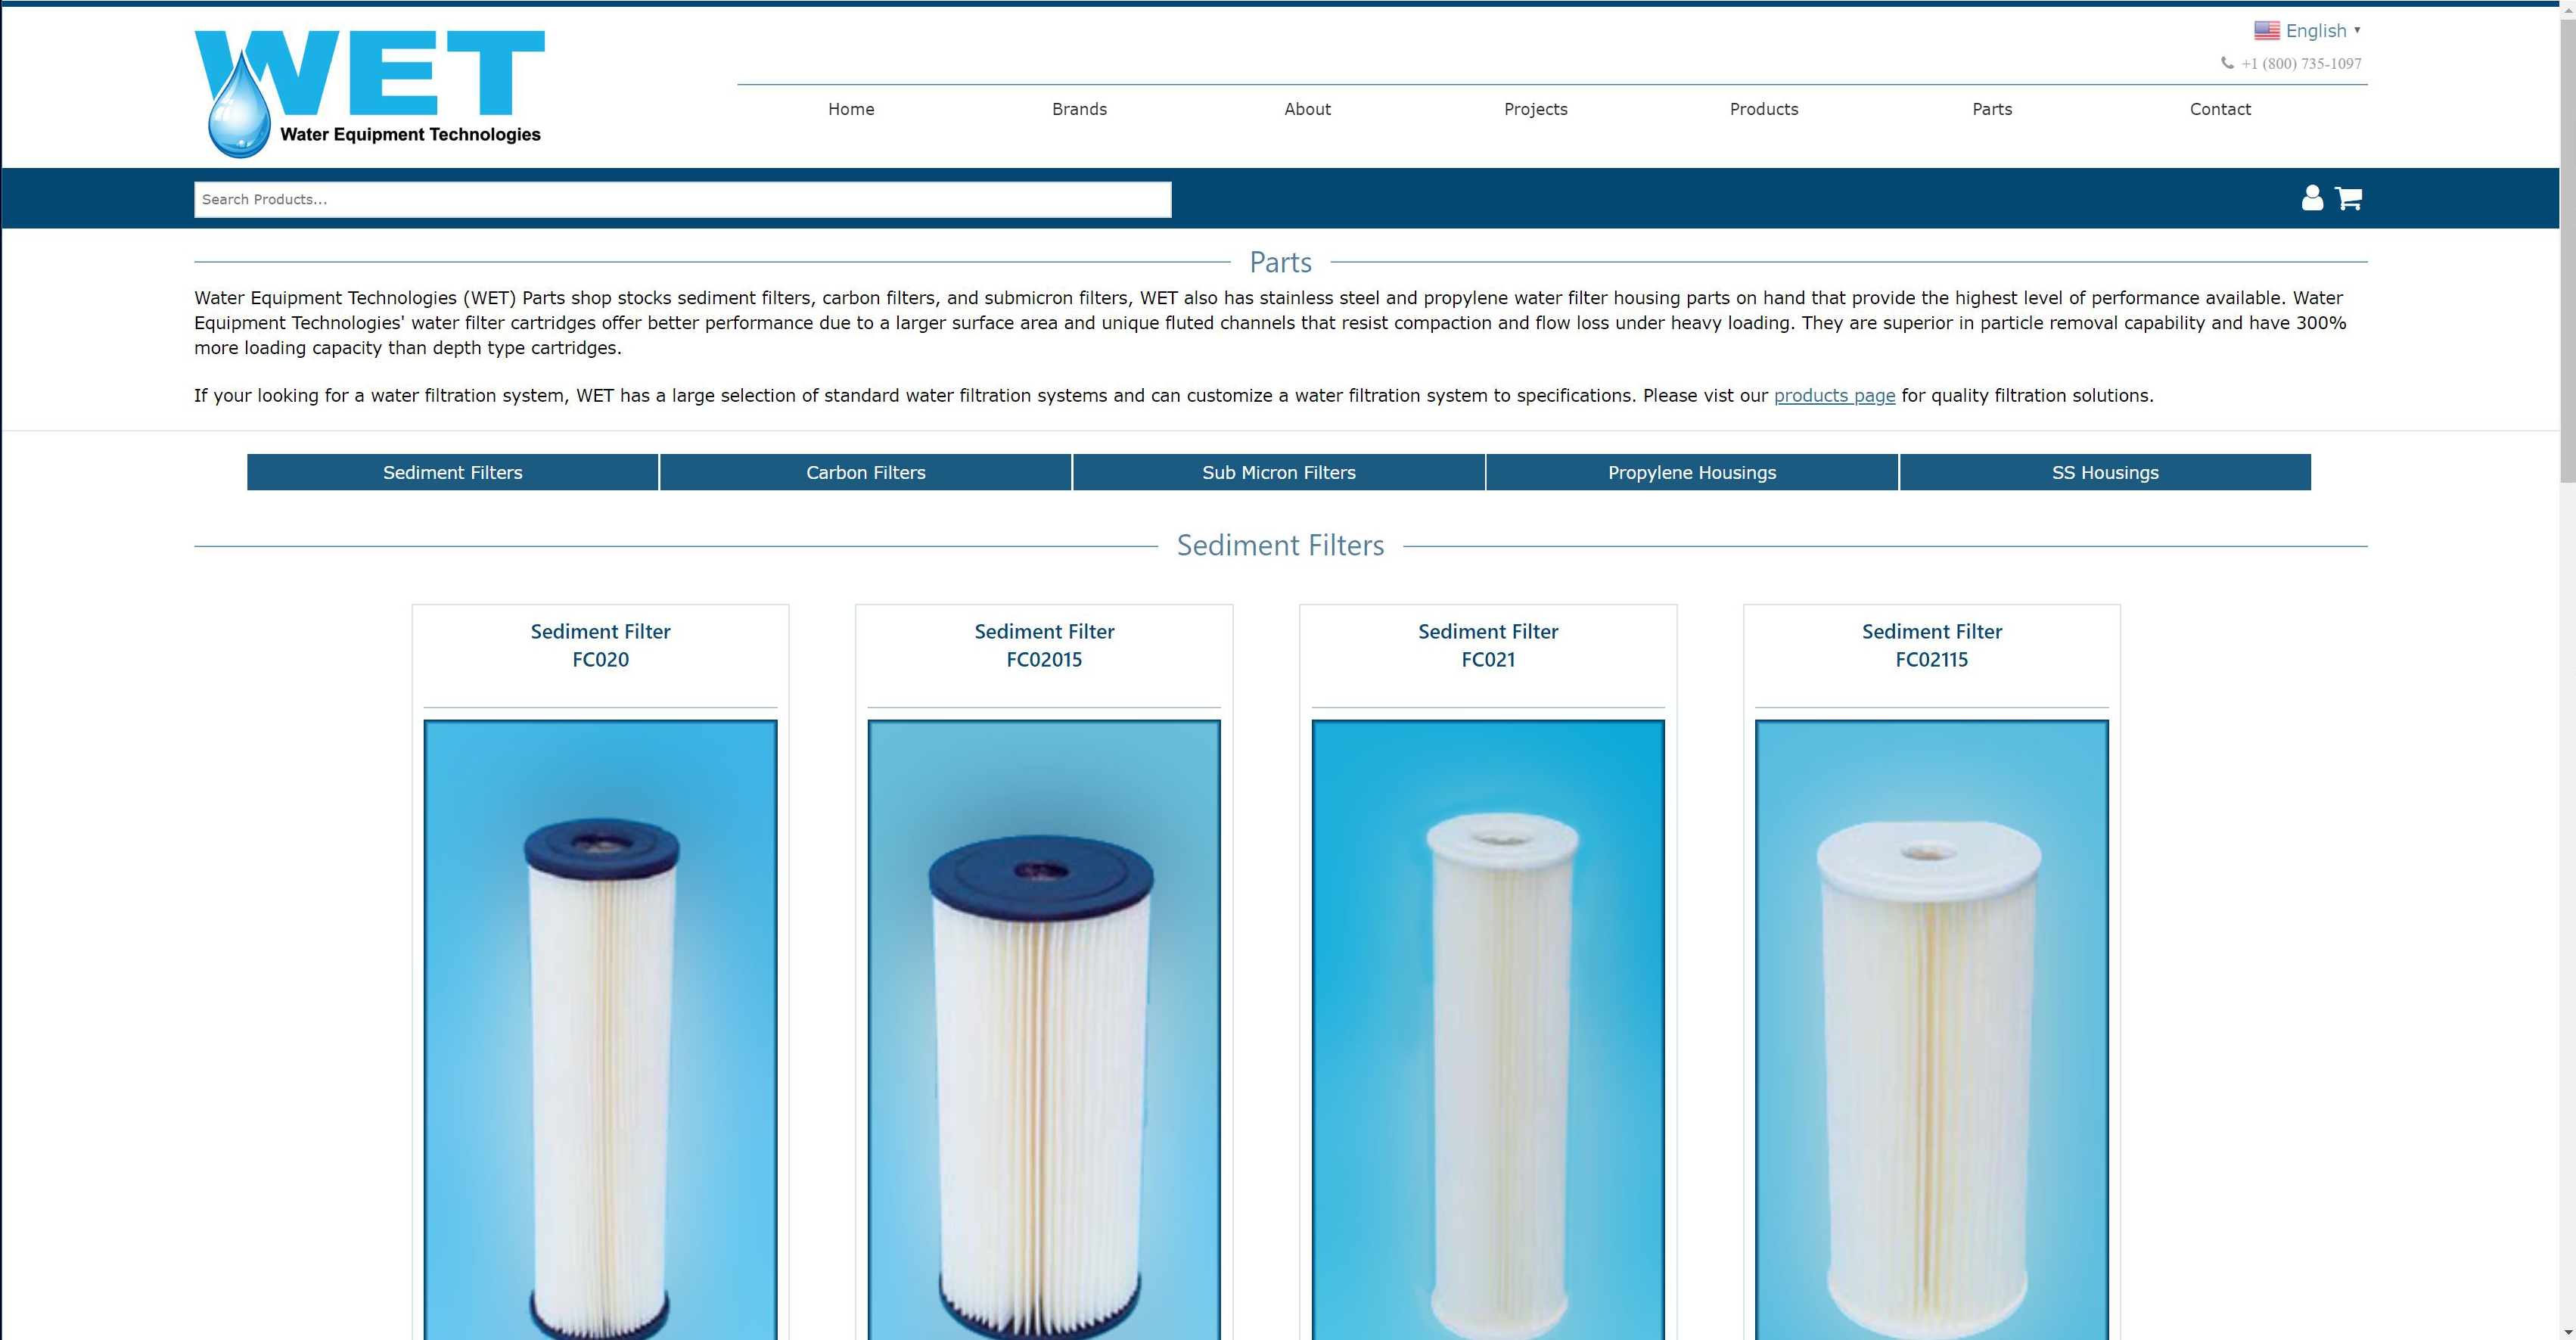 WET Sediment Carbon Submicron Filters website screenshot of the WET parts page.